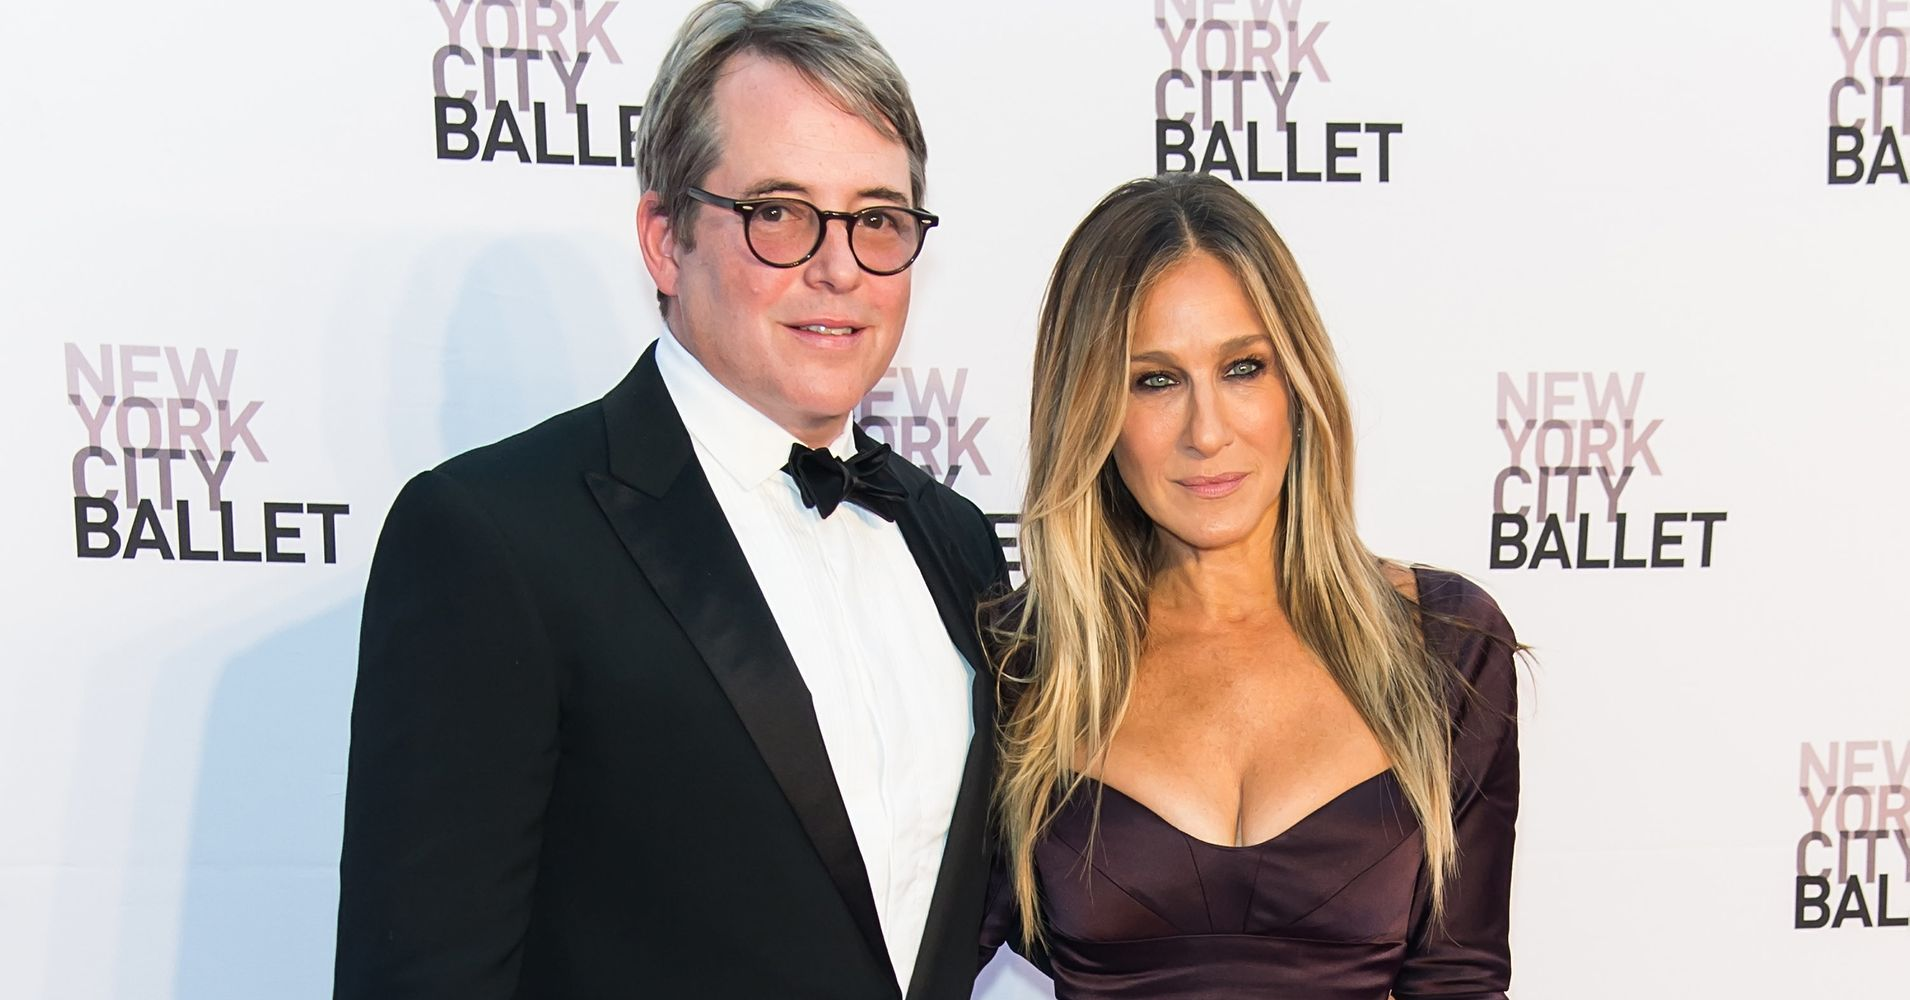 Matthew Broderick On How He And Sarah Jessica Parker Make ...